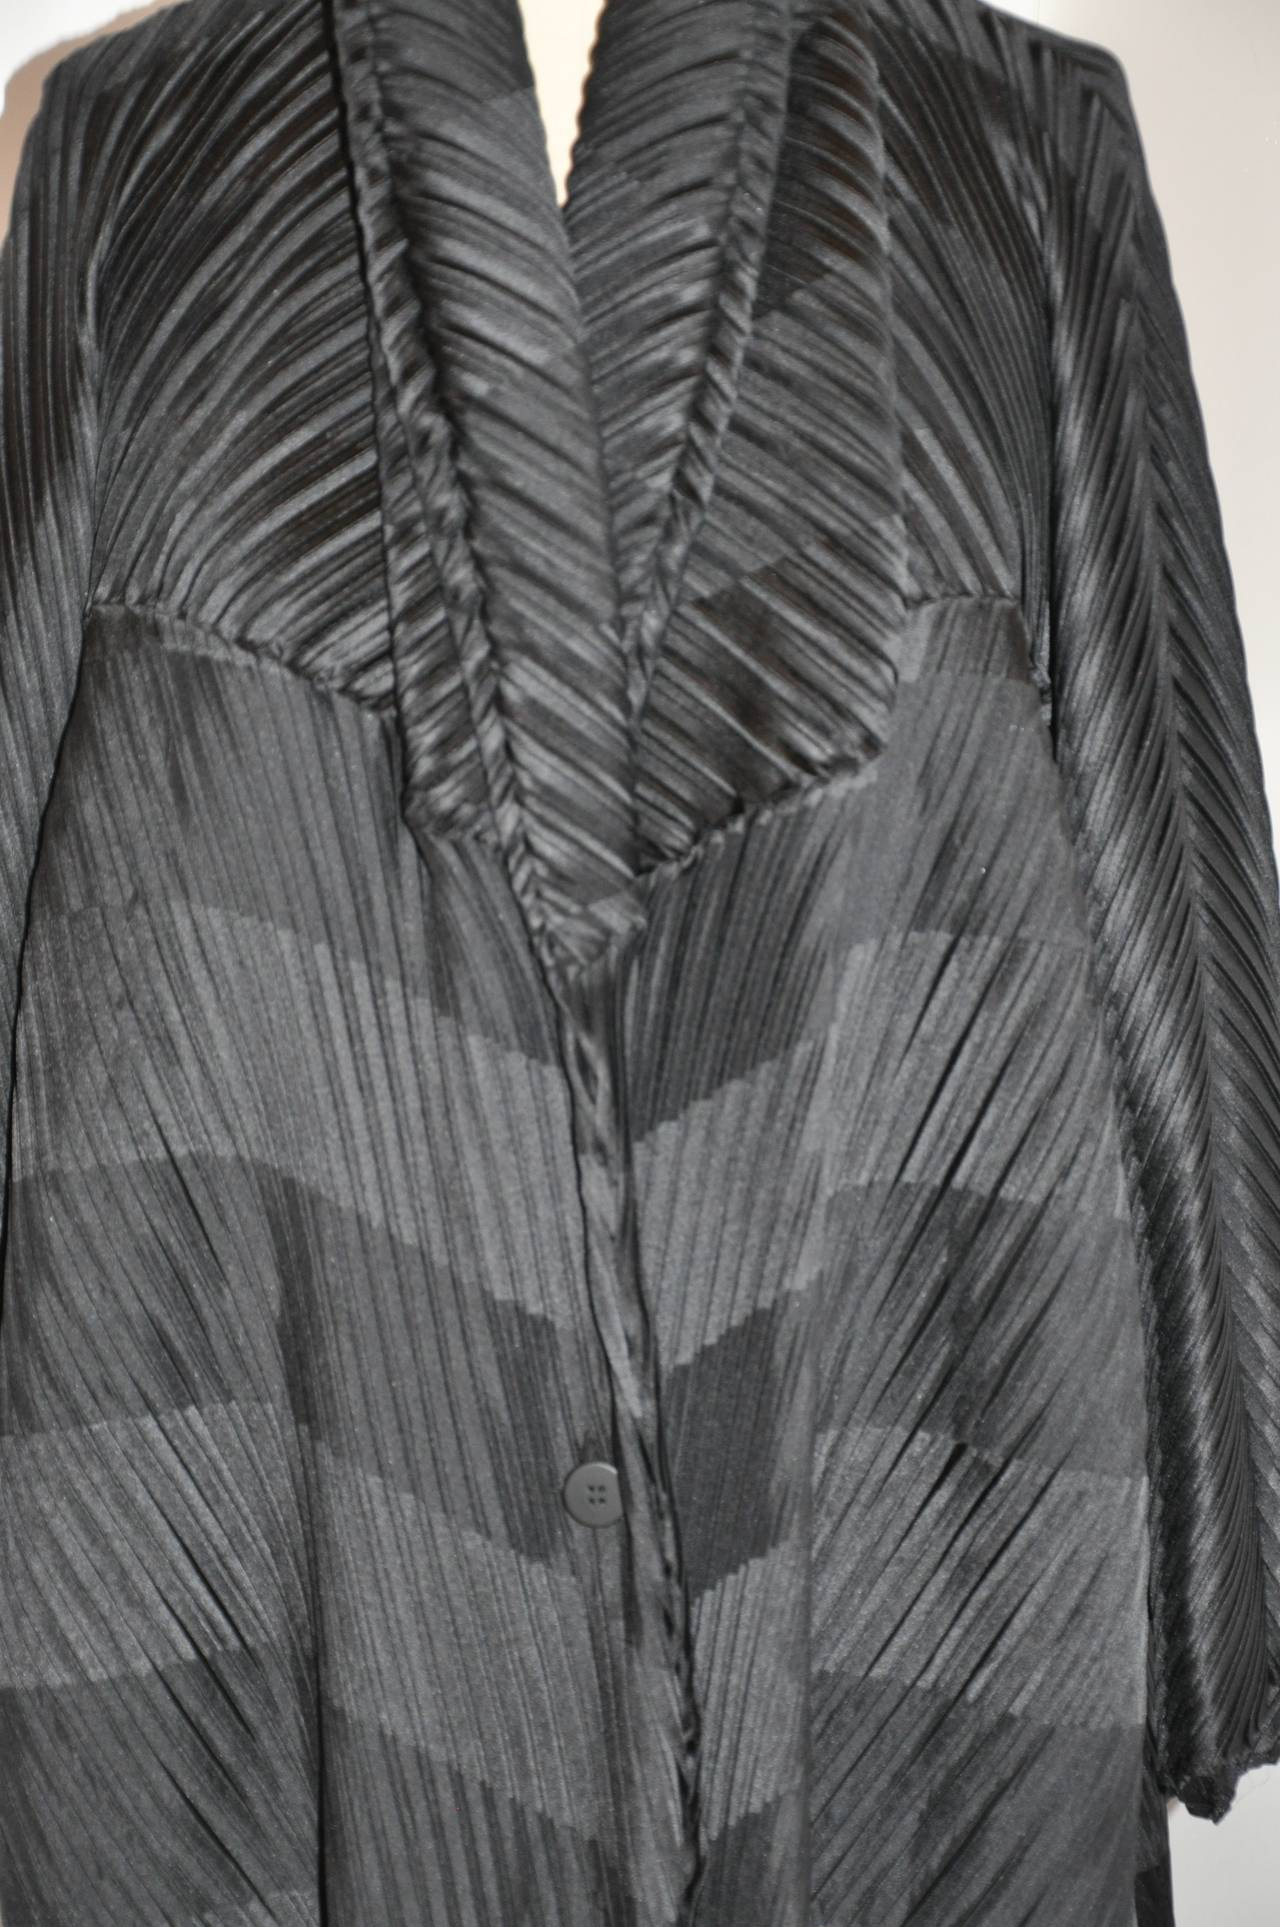 Issey Miyake Signature Pleated Medium-Weight Black Multi-directional Coat In New Never_worn Condition For Sale In New York, NY